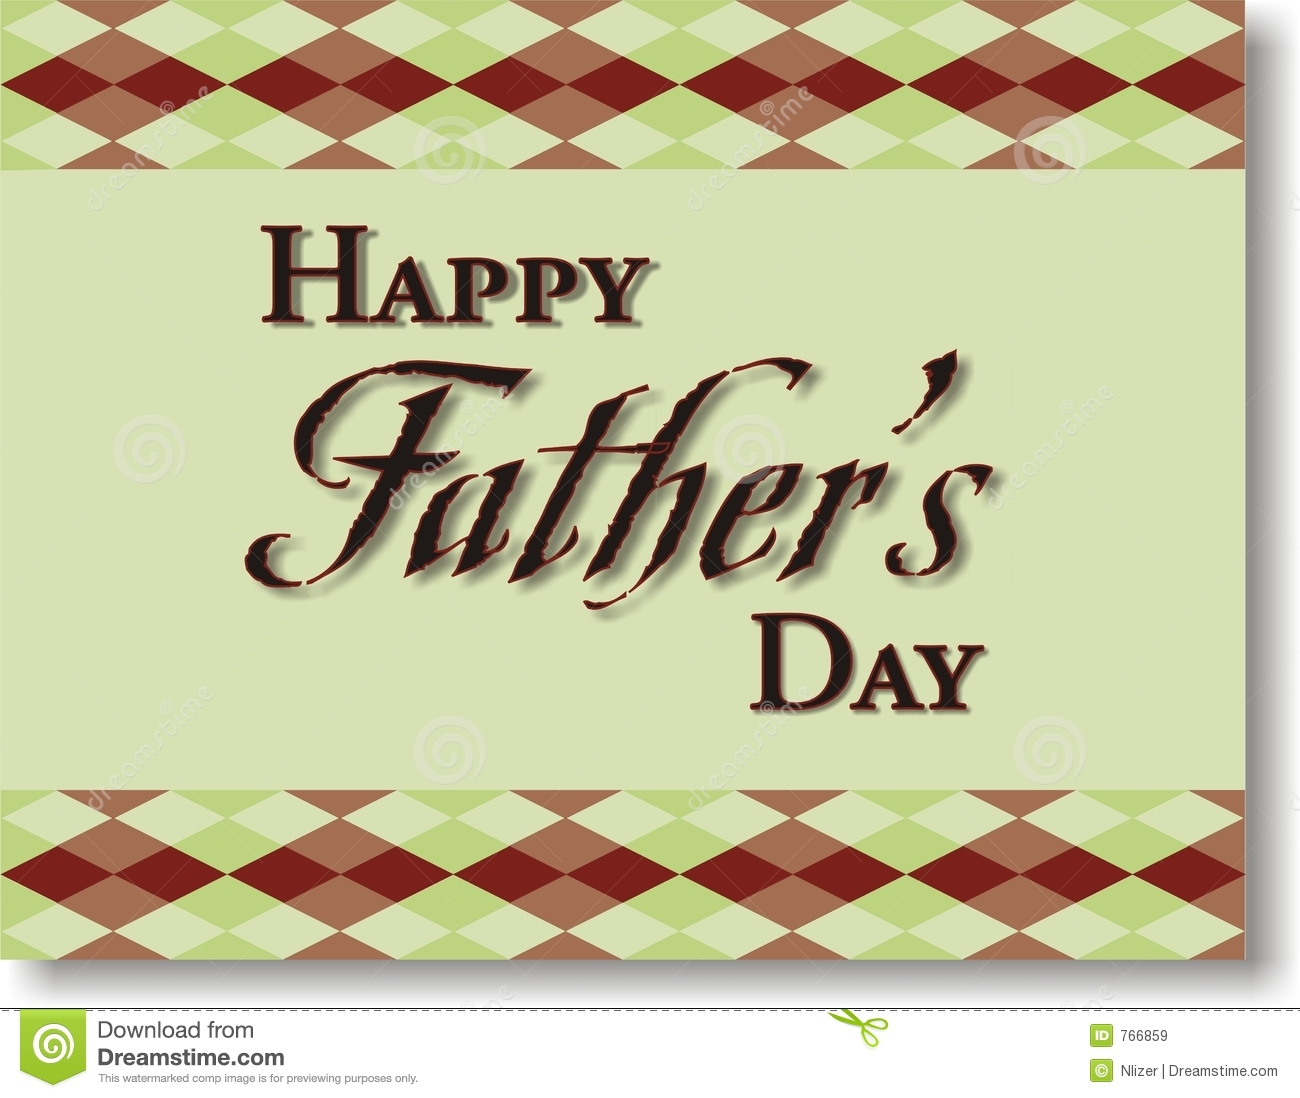 hight resolution of an illustration of happy father s day with a green background and plaid border for use in website wallpaper design presentation desktop invitation or